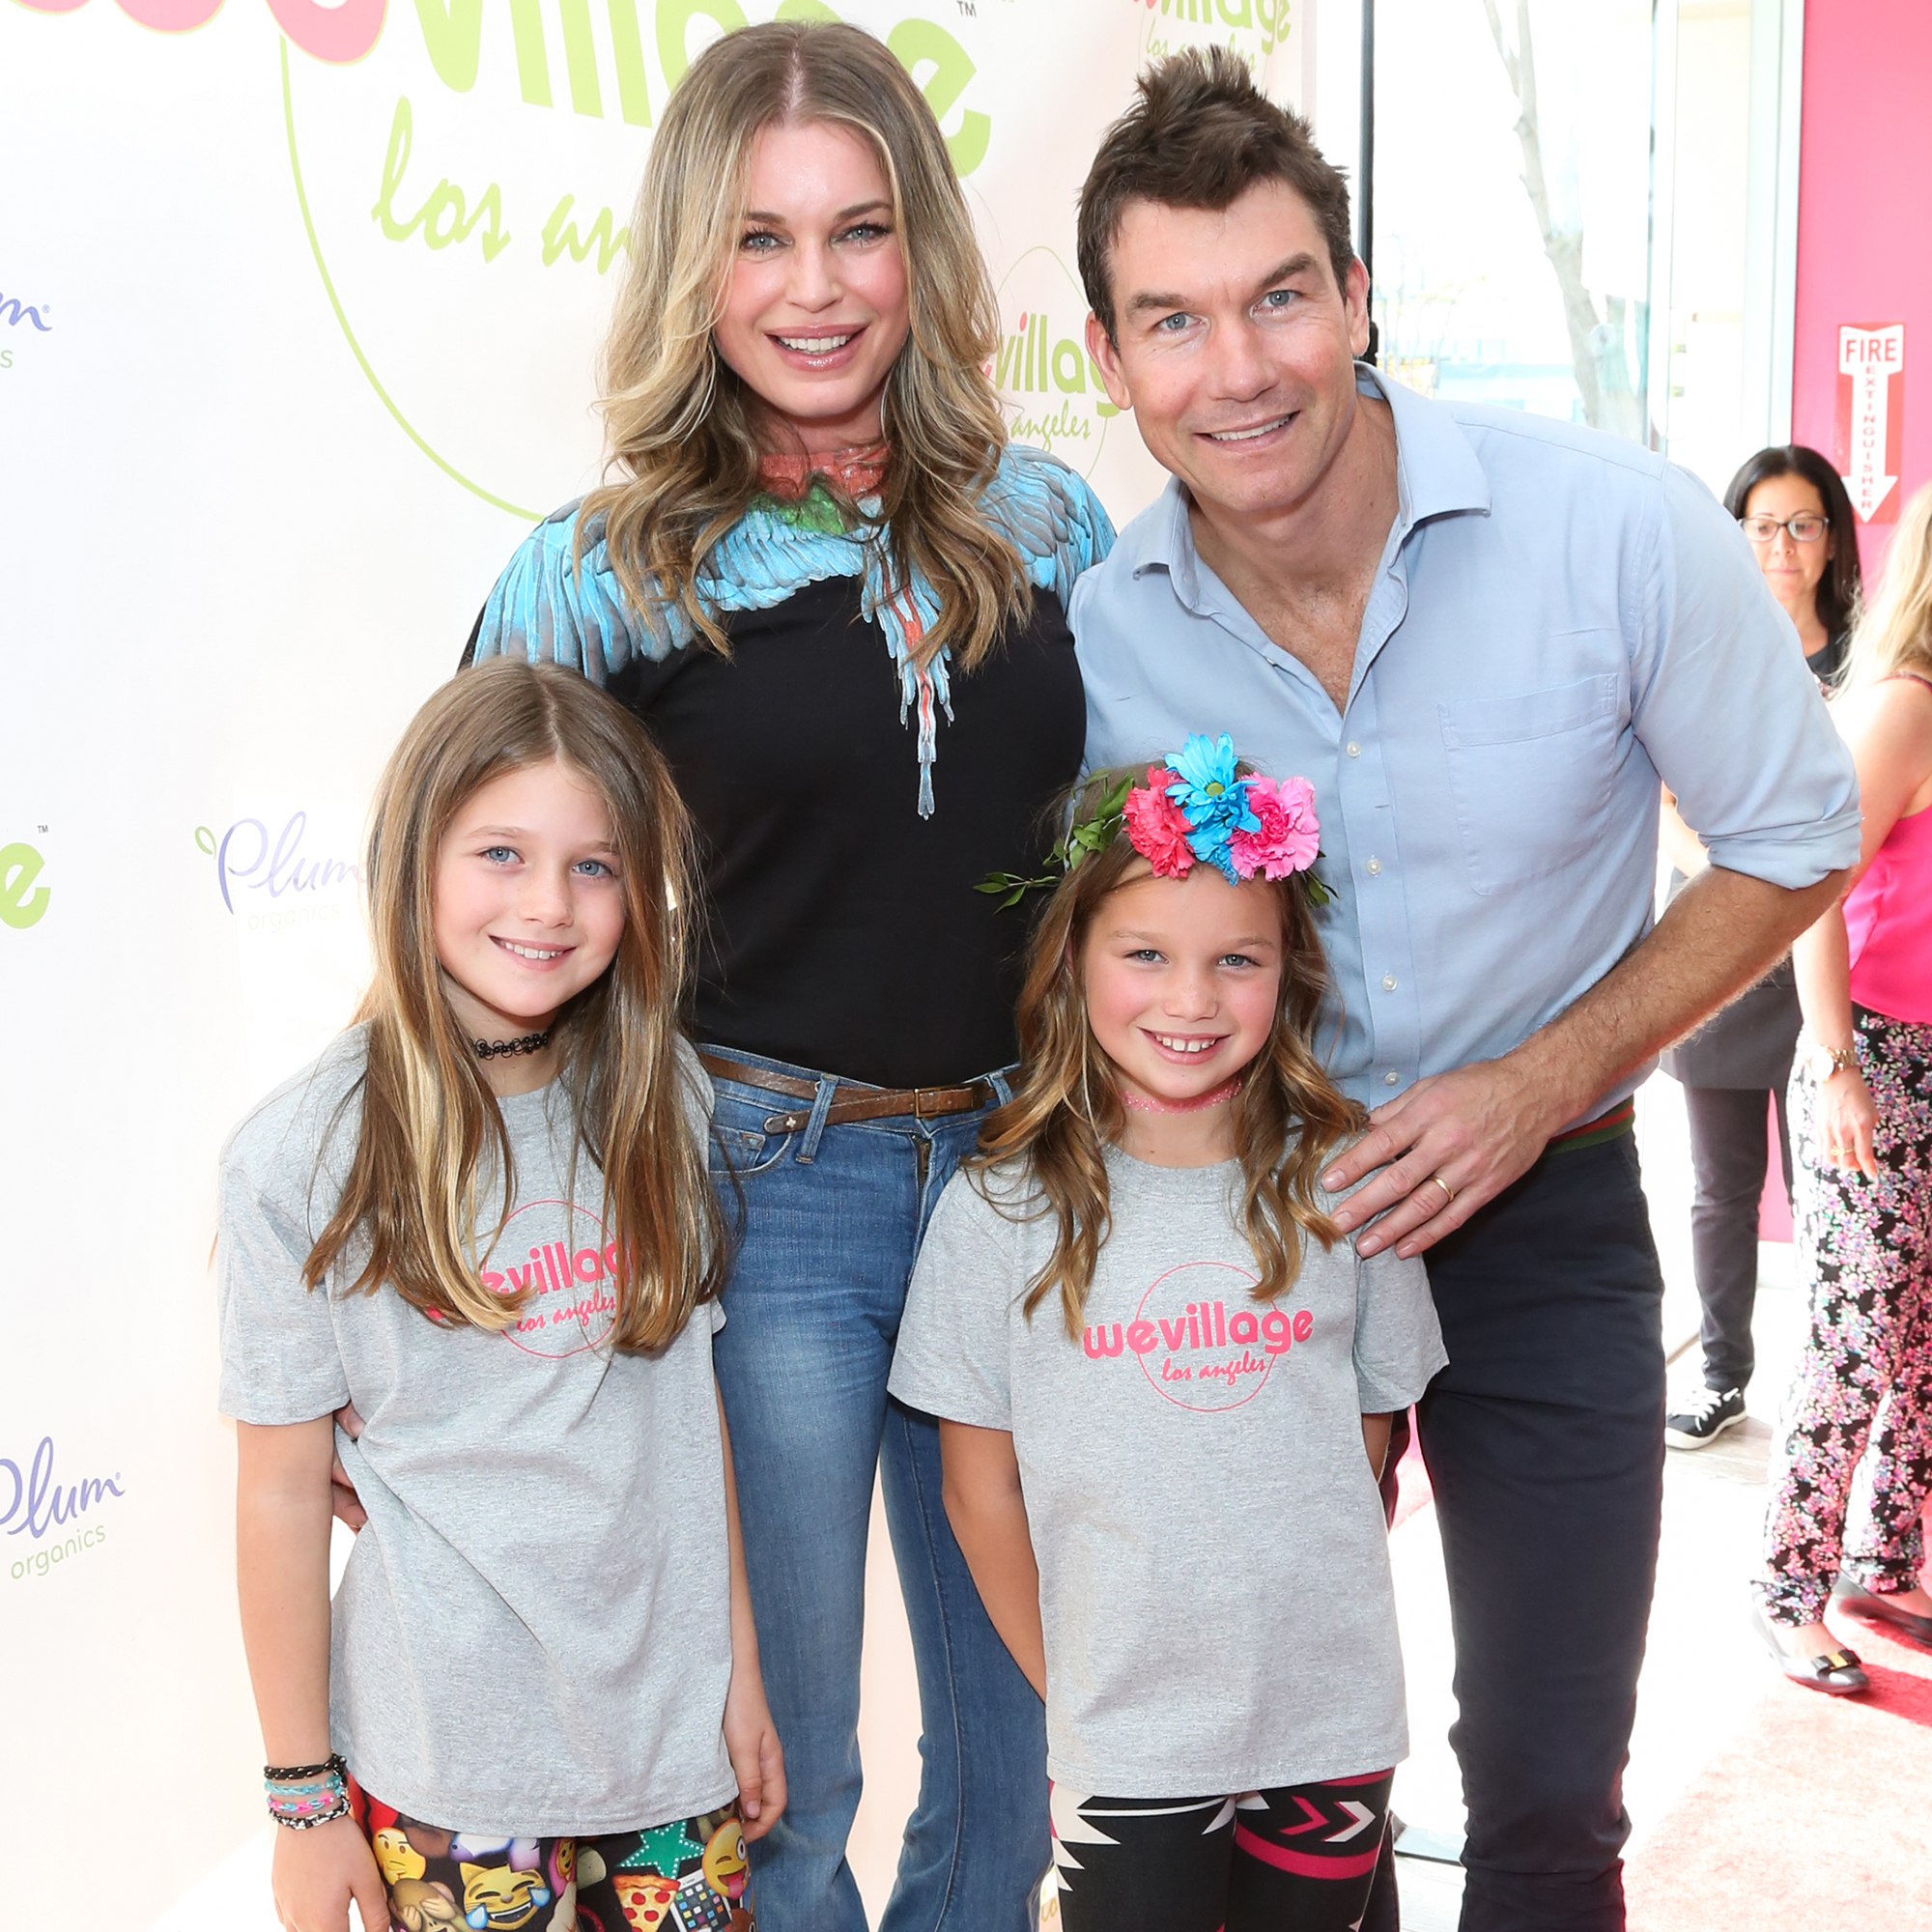 Rebecca Romijn Reveals the One Thing She Won't Let Her Kids Do - Dolly Rebecca Rose O'Connell, Rebecca Romijn, Charlie Tamara Tulip O'Connell and Jerry O'Connell.